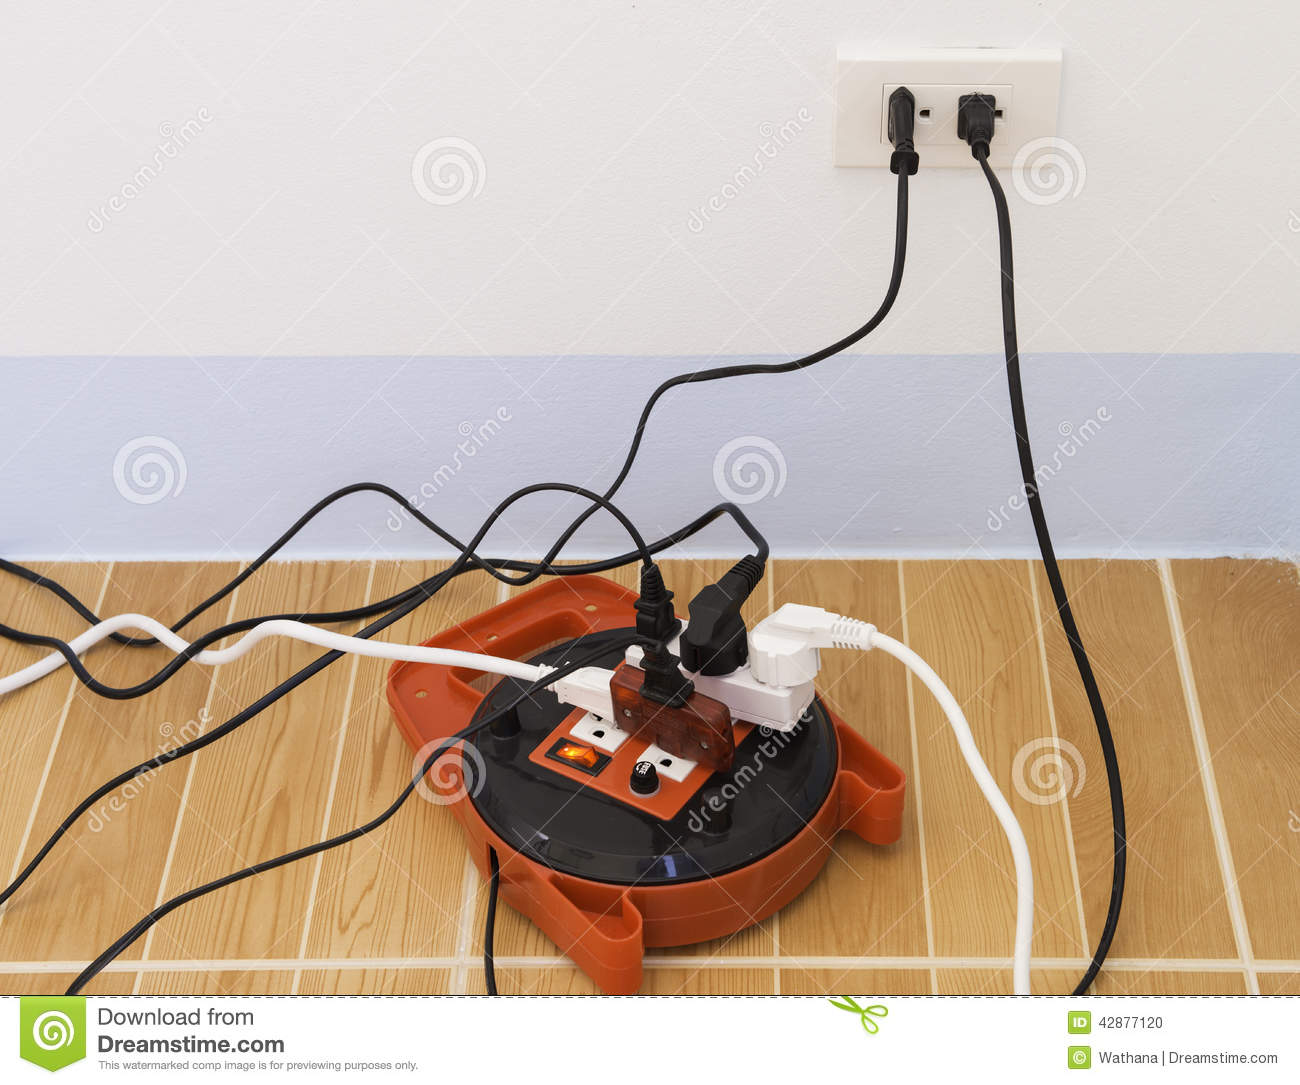 Electricity overload stock photo. Image of utility, outlet ...